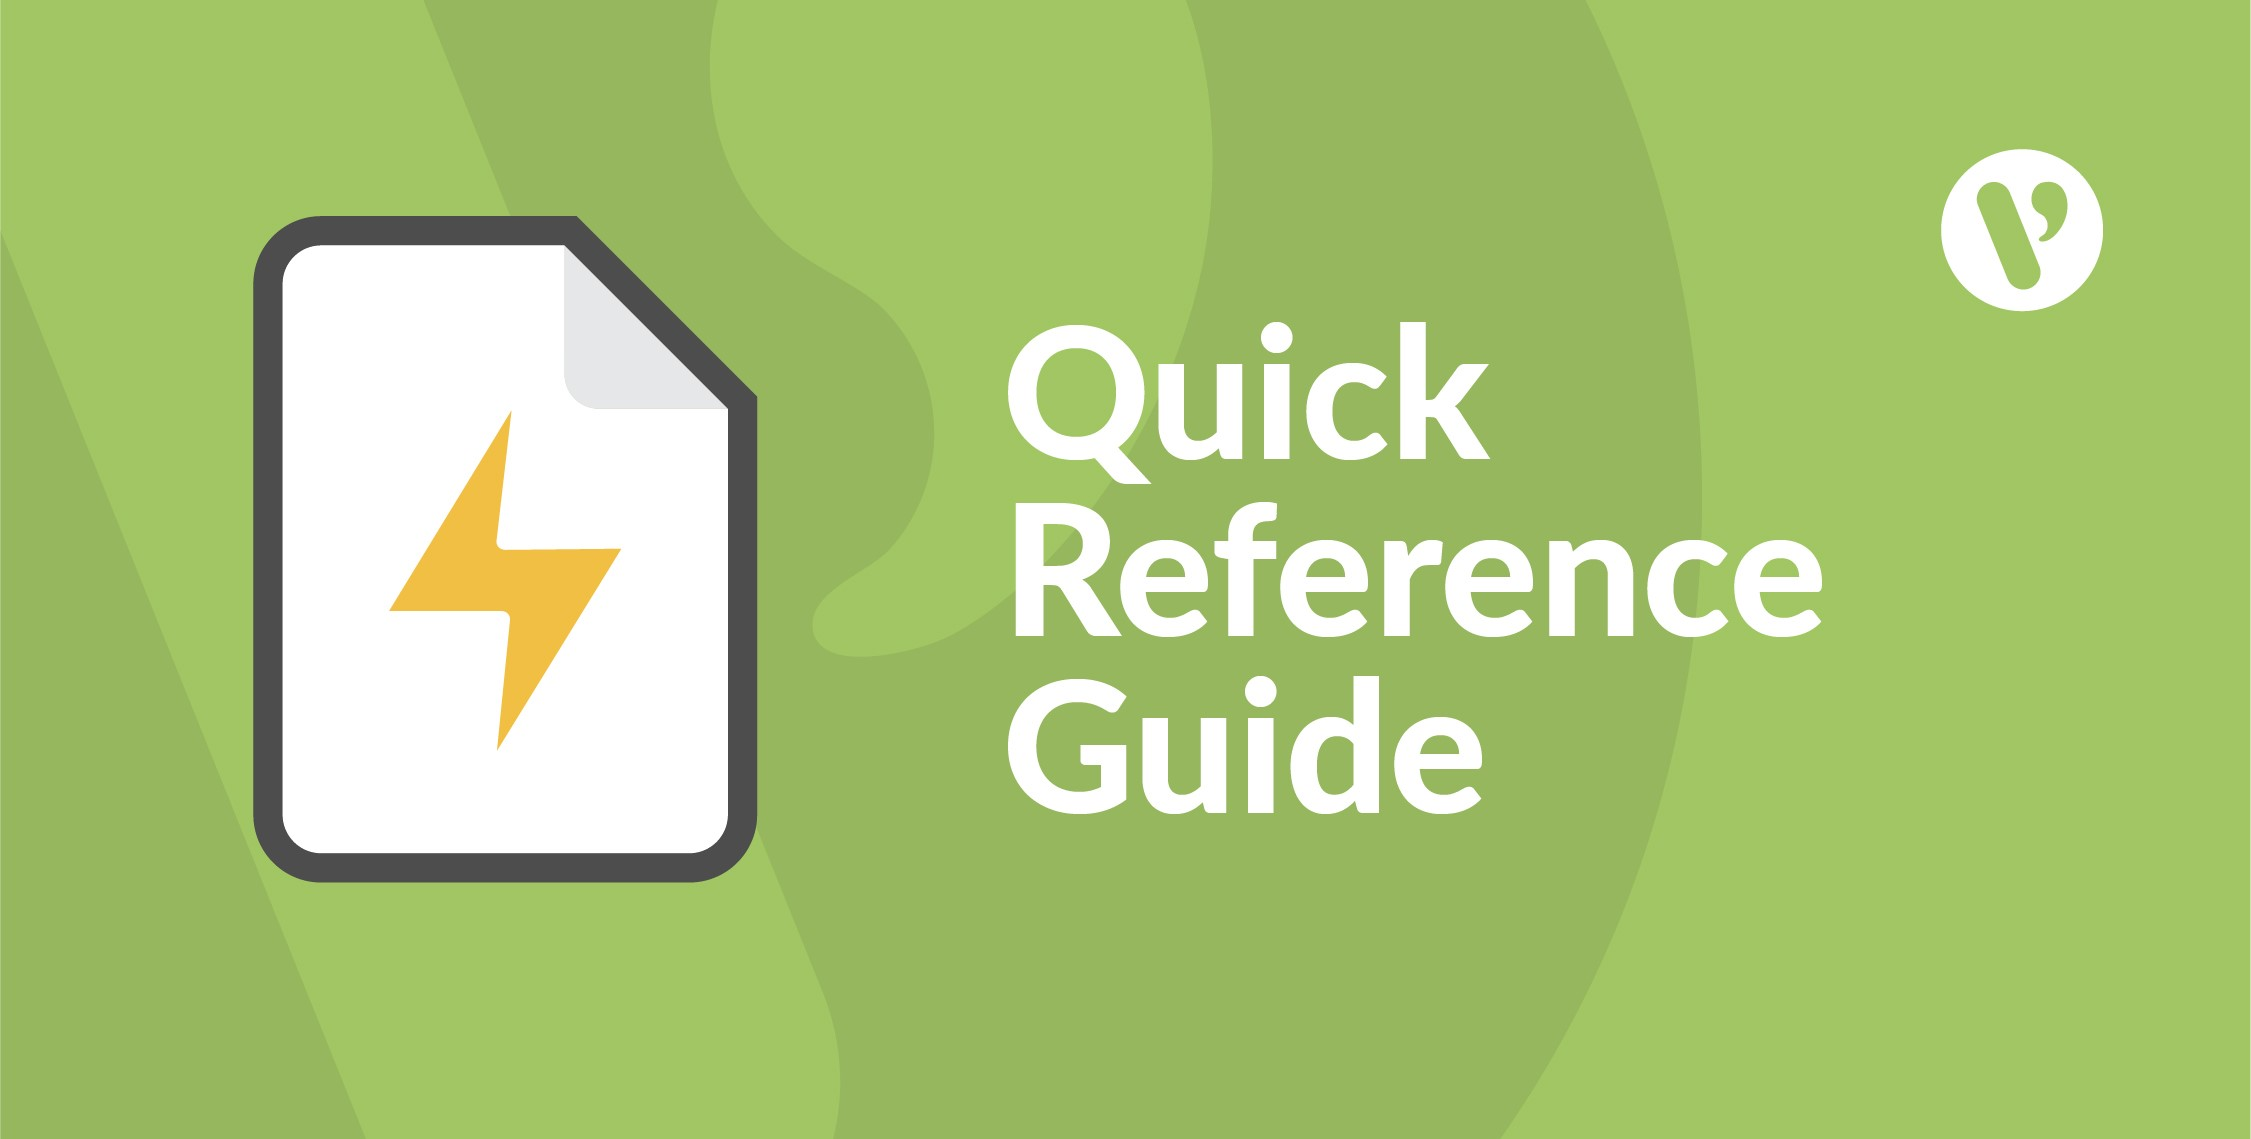 better learner Quick Reference Guide